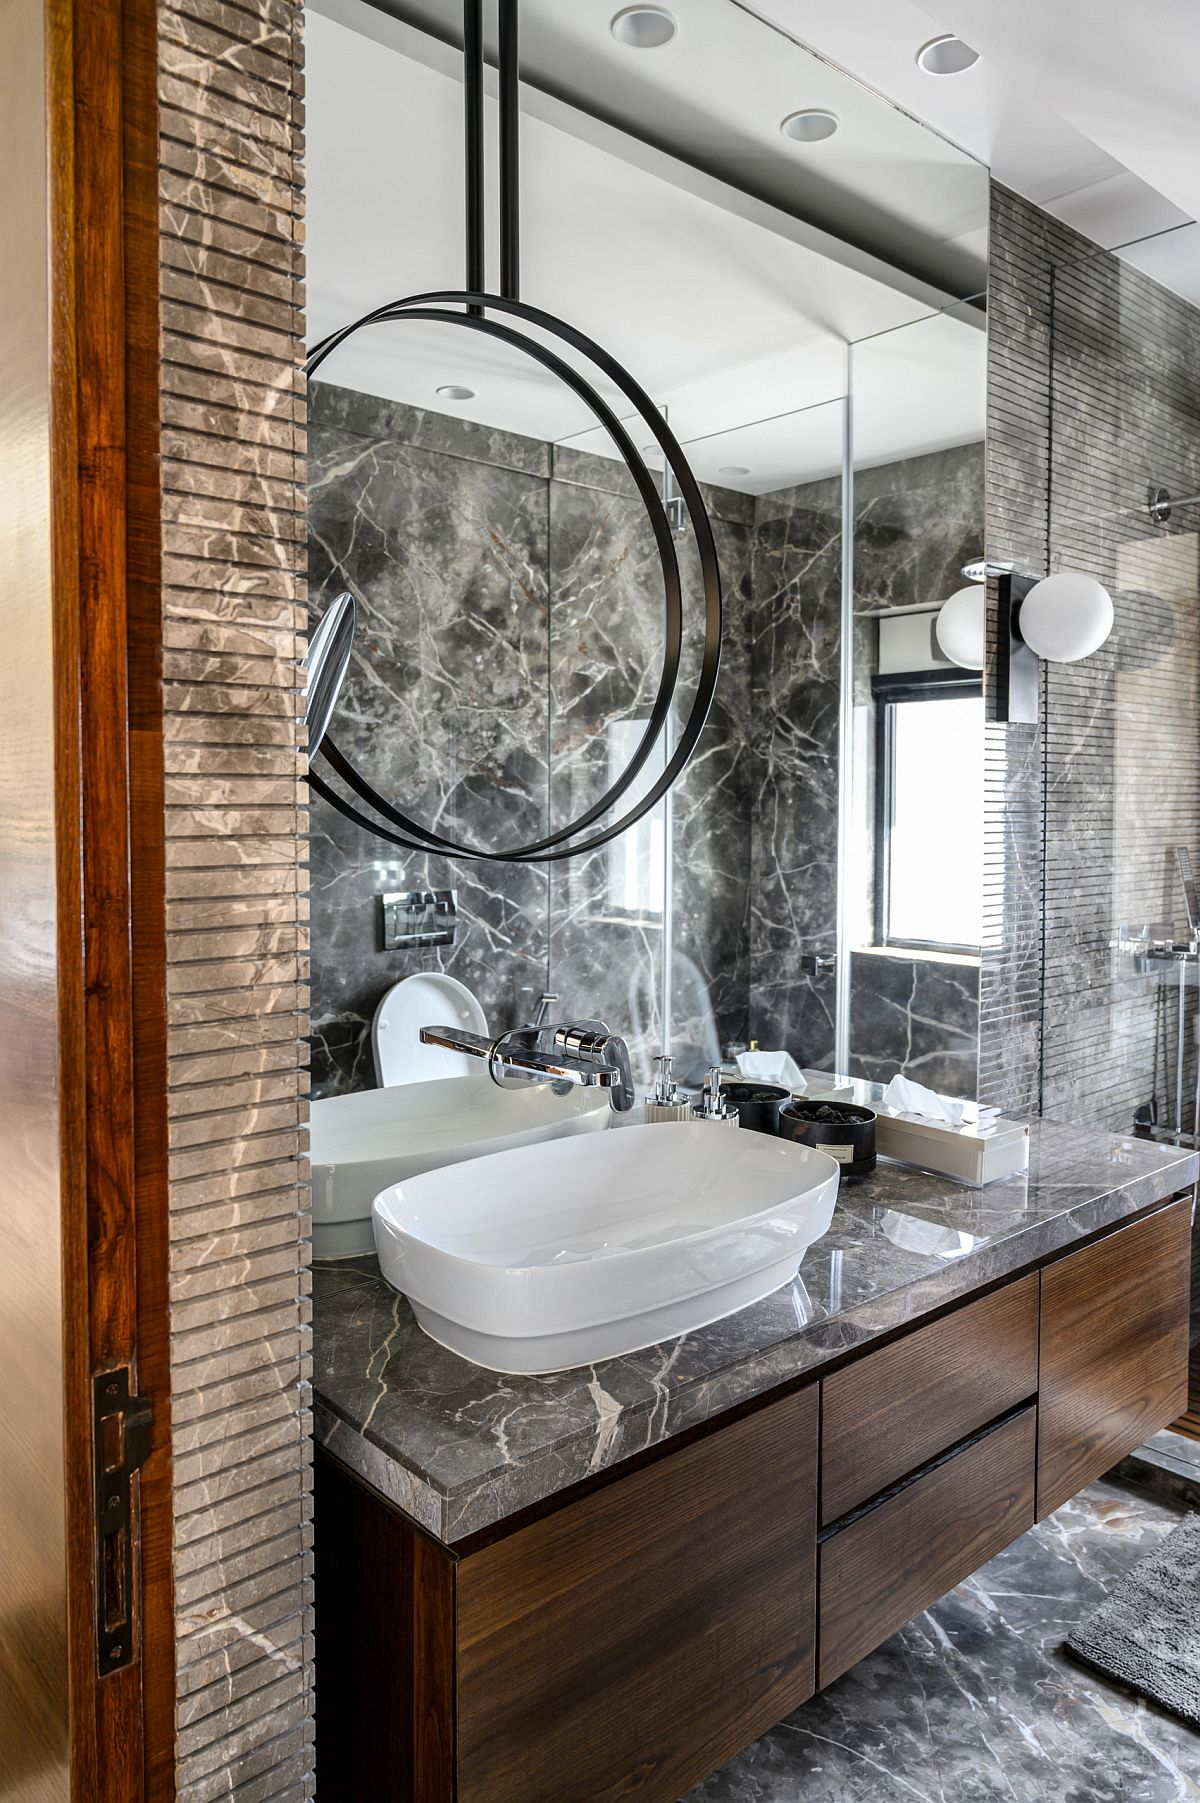 Natural-stone-brings-shades-of-dark-gray-and-black-to-this-contemporary-bathroom-33579